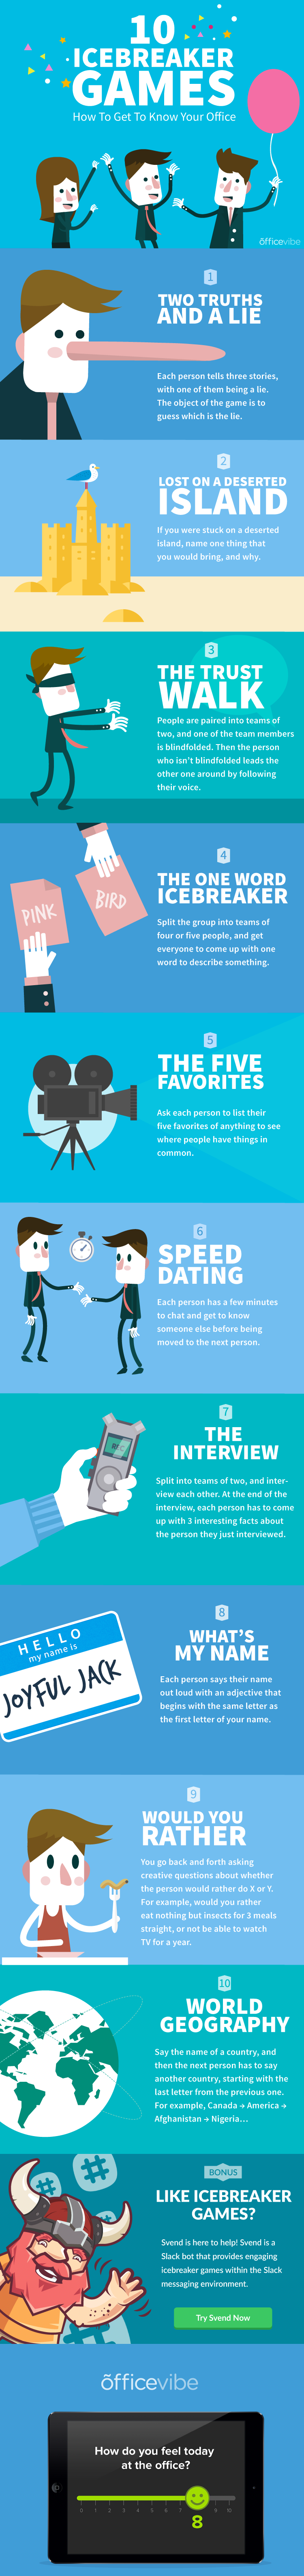 10 Icebreaker Games: How To Get To Know Your Office #Infographic